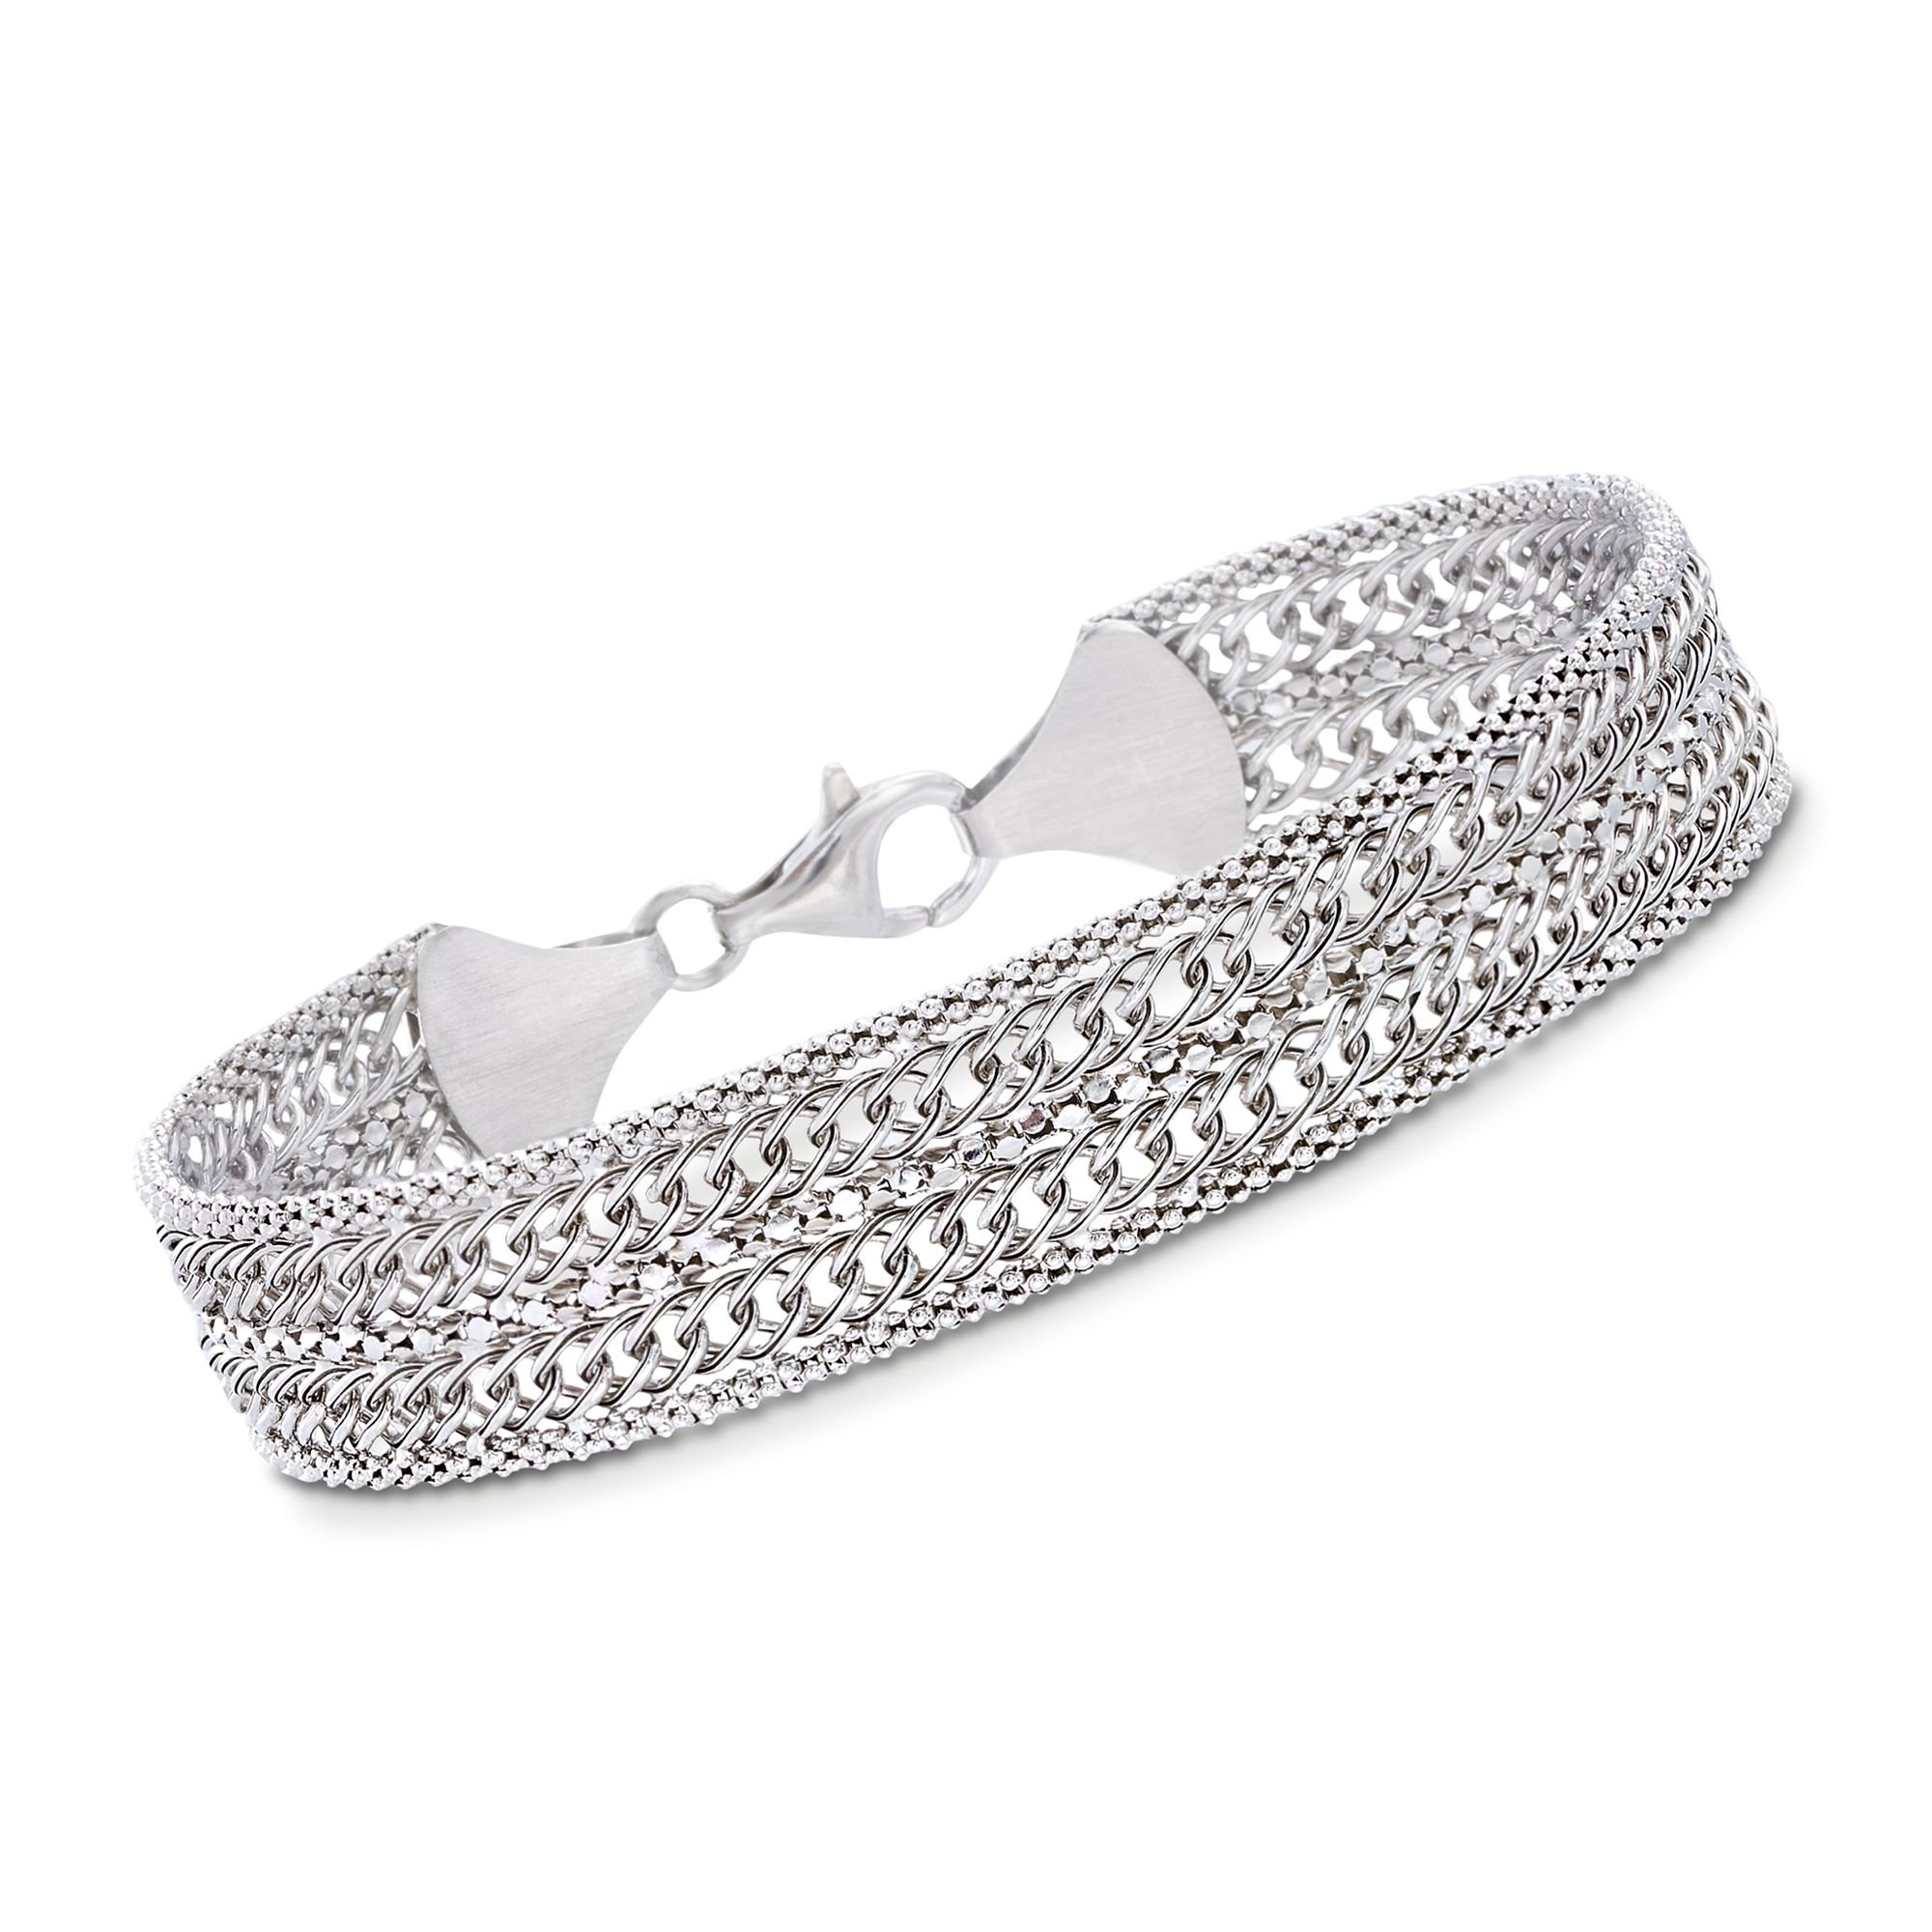 Ross-Simons Italian Sterling Silver Popcorn Chain and Curb-Link Bracelet by Ross-Simons